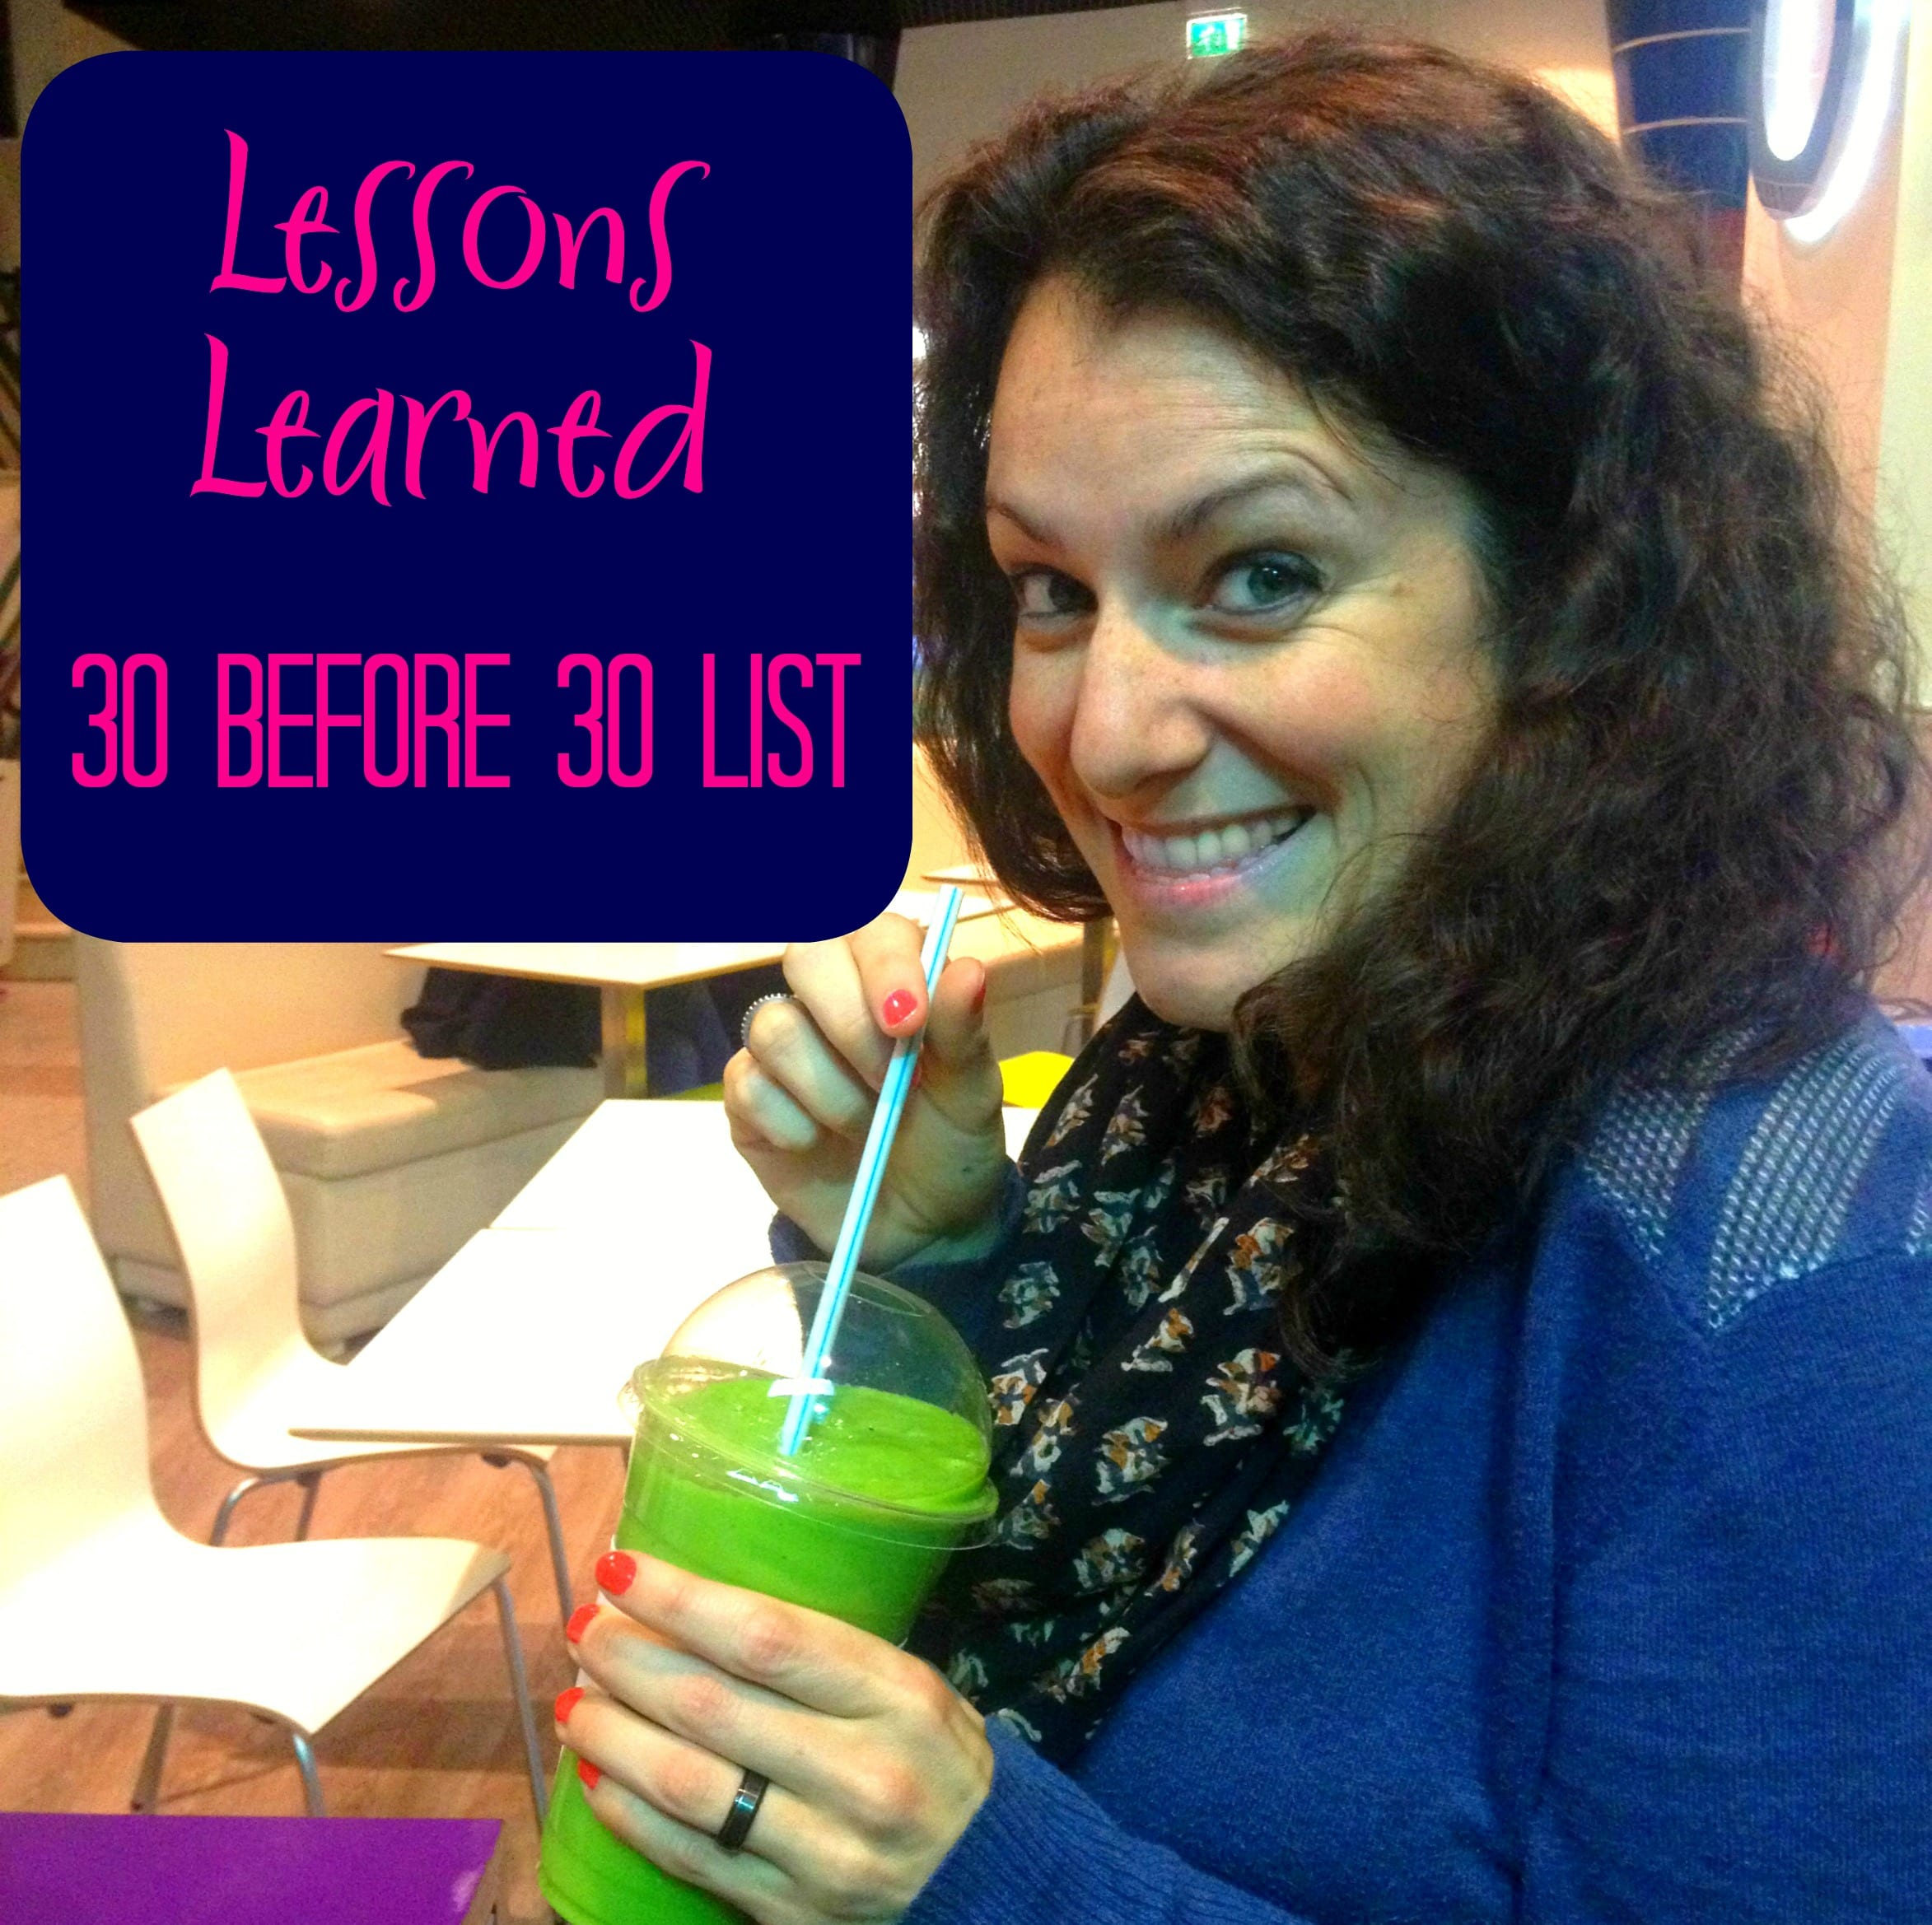 30 before 30 Facebook lesson learned